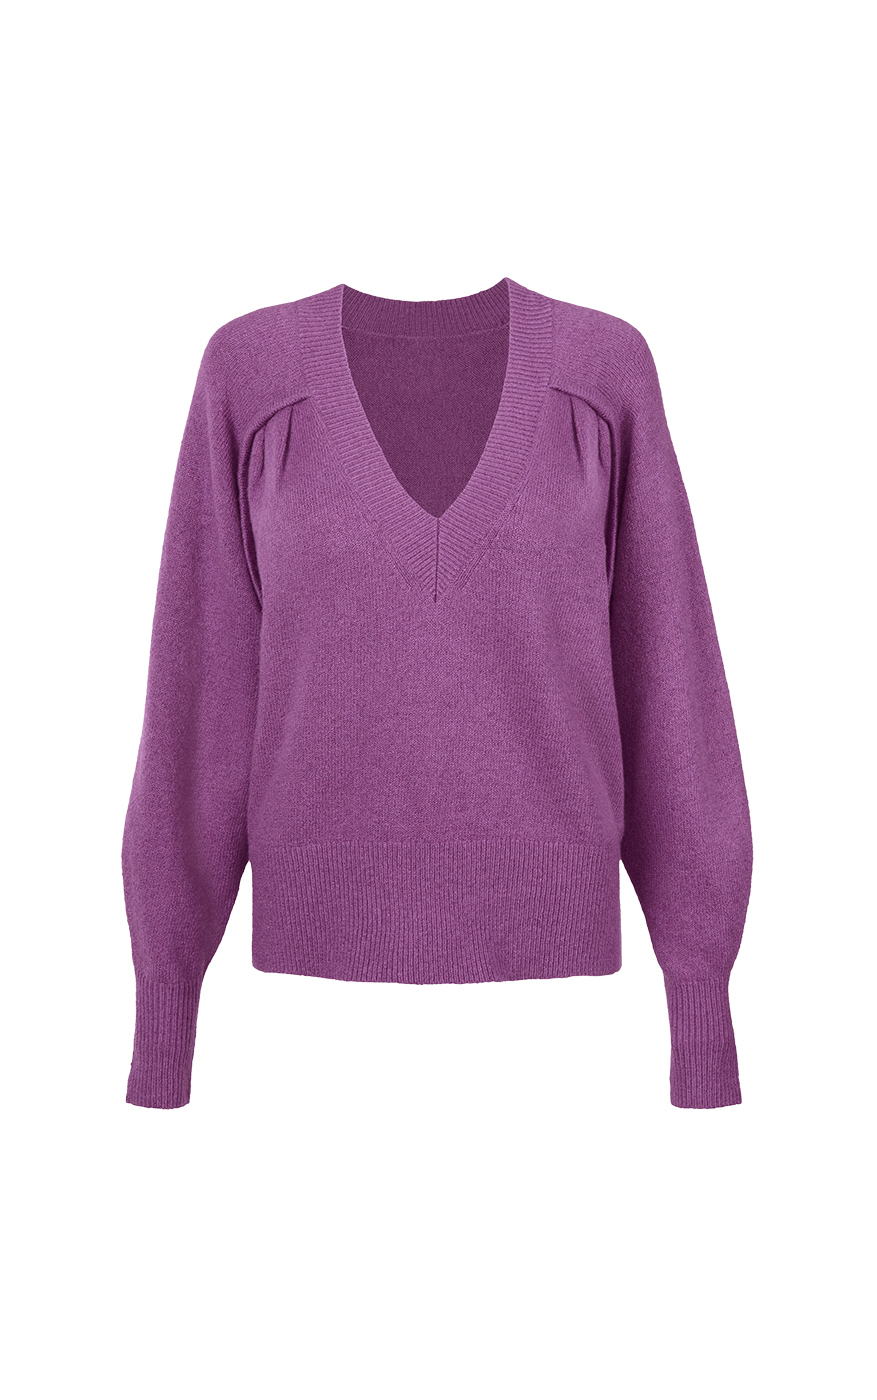 Luxury Pullover in Violet Front